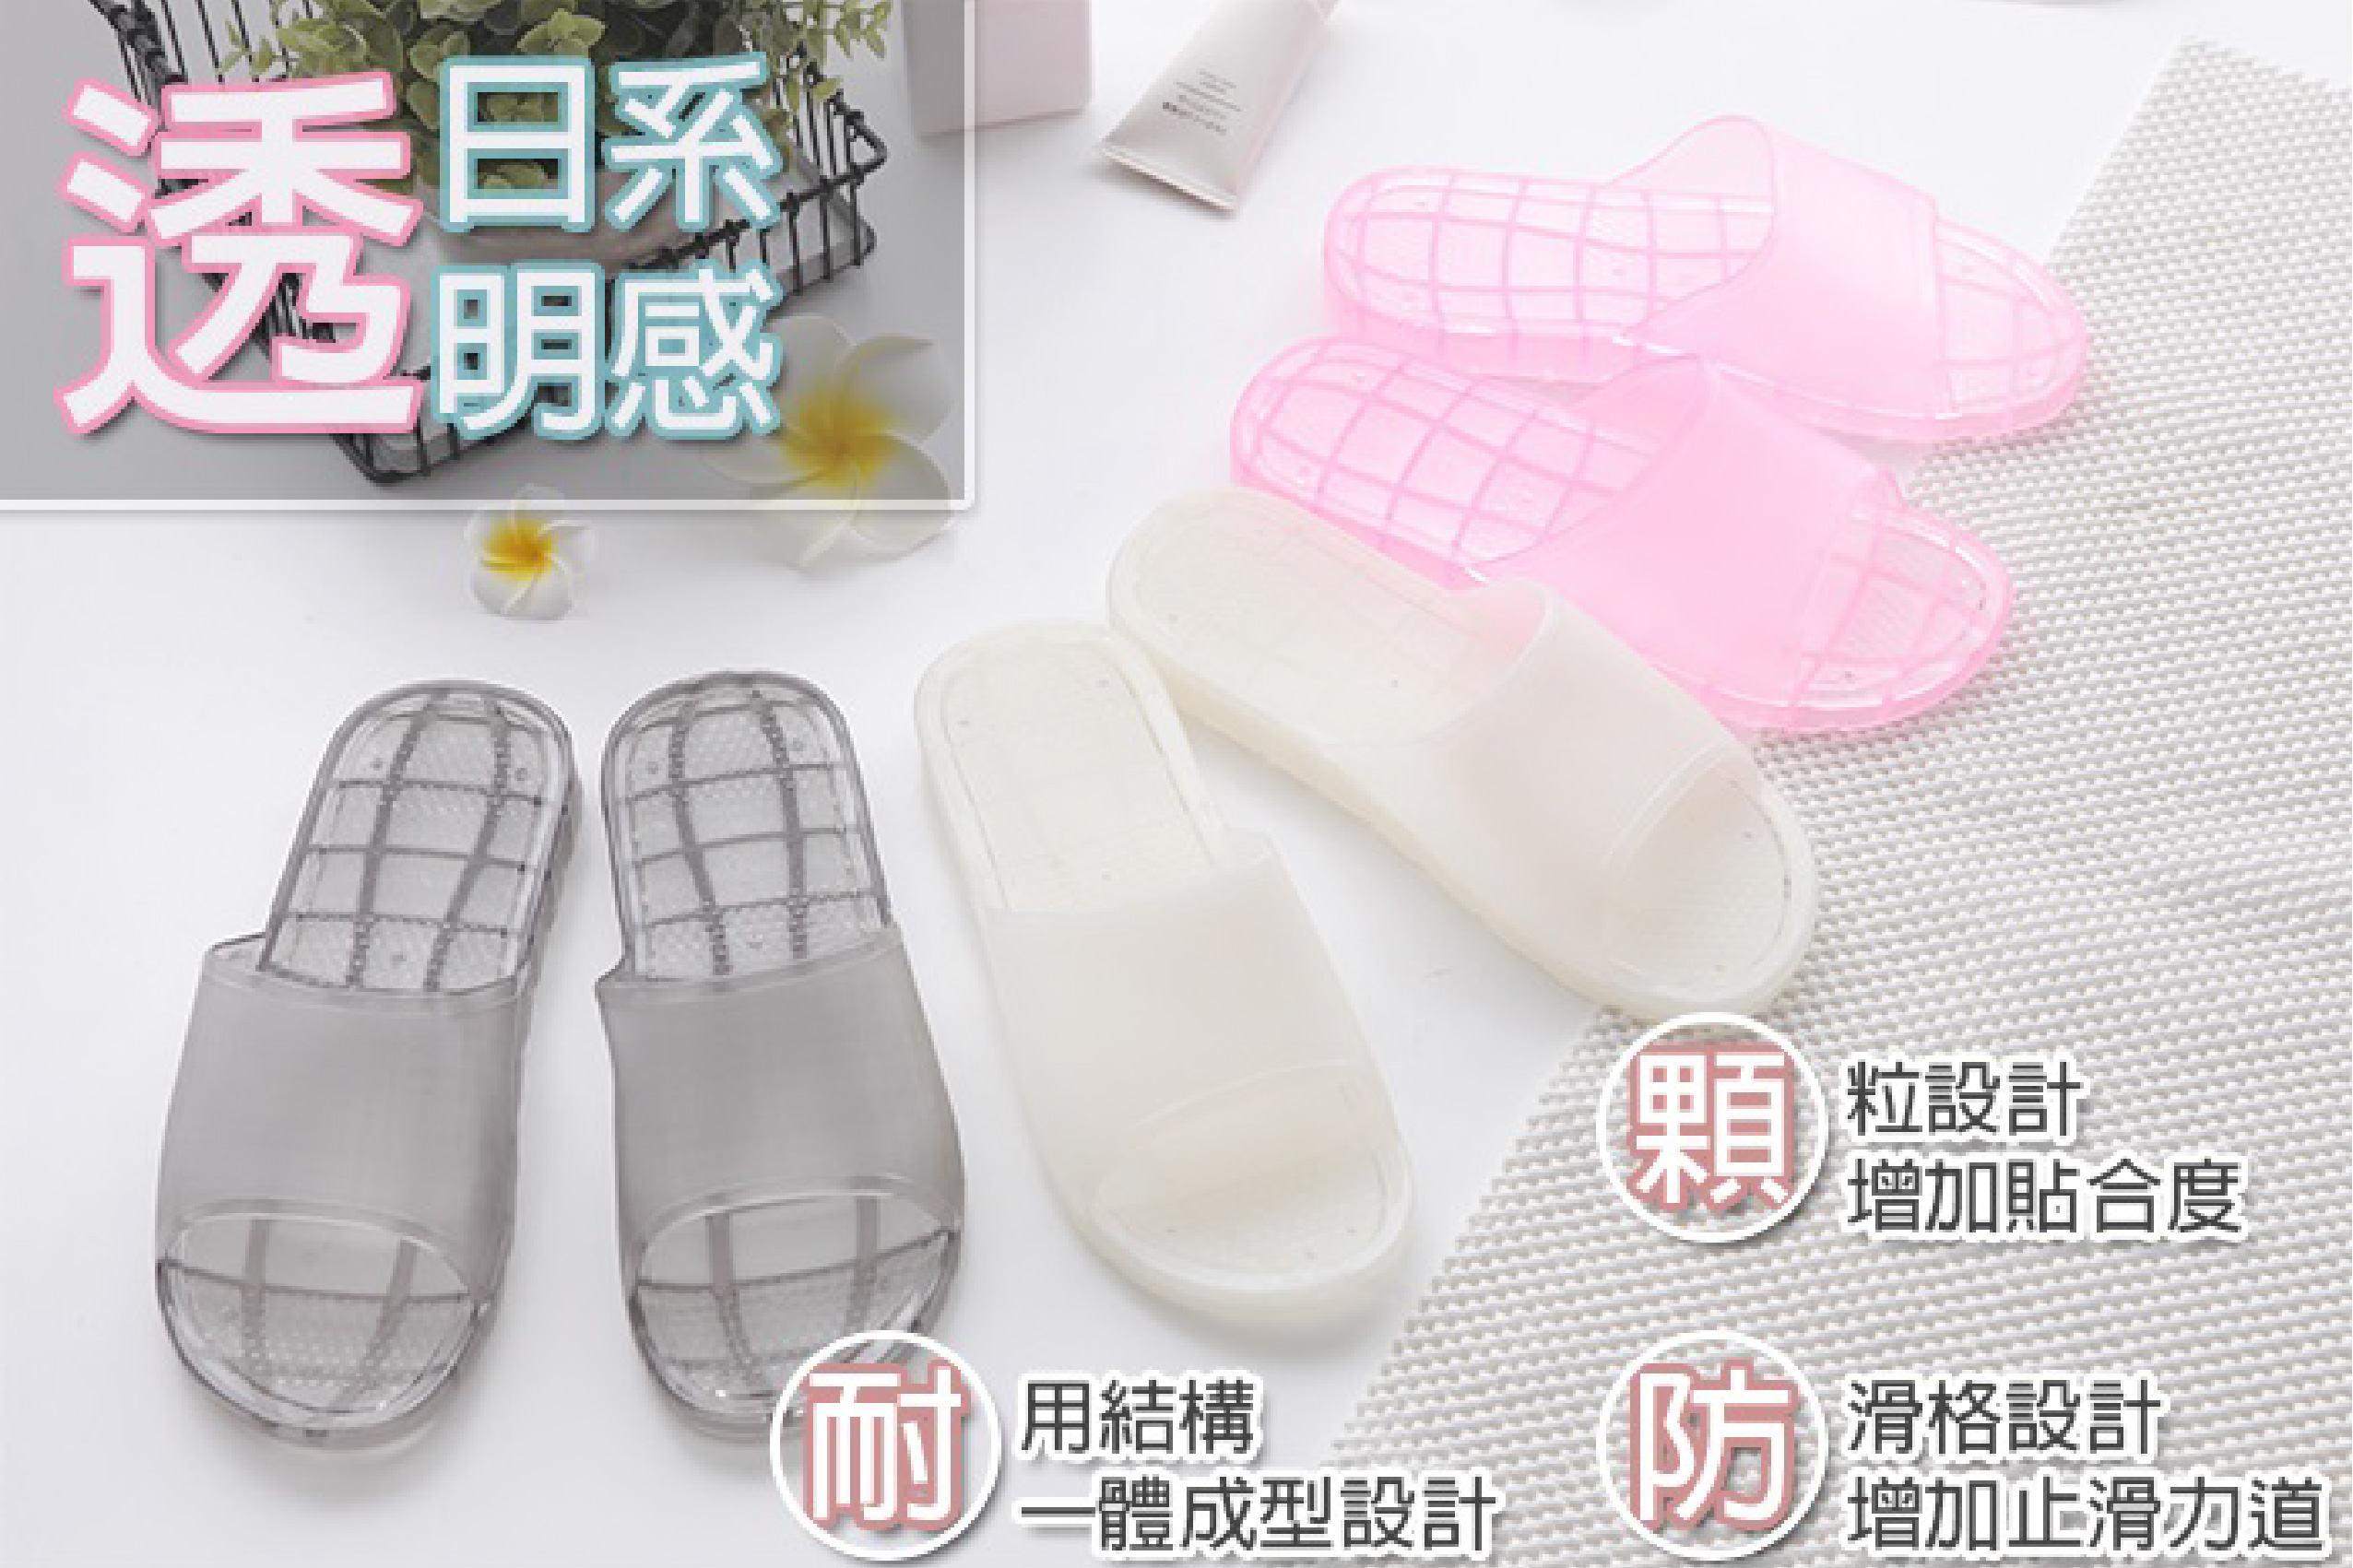 https://www.333-slippers.com/SalePage/Index/3163245?cid=52223